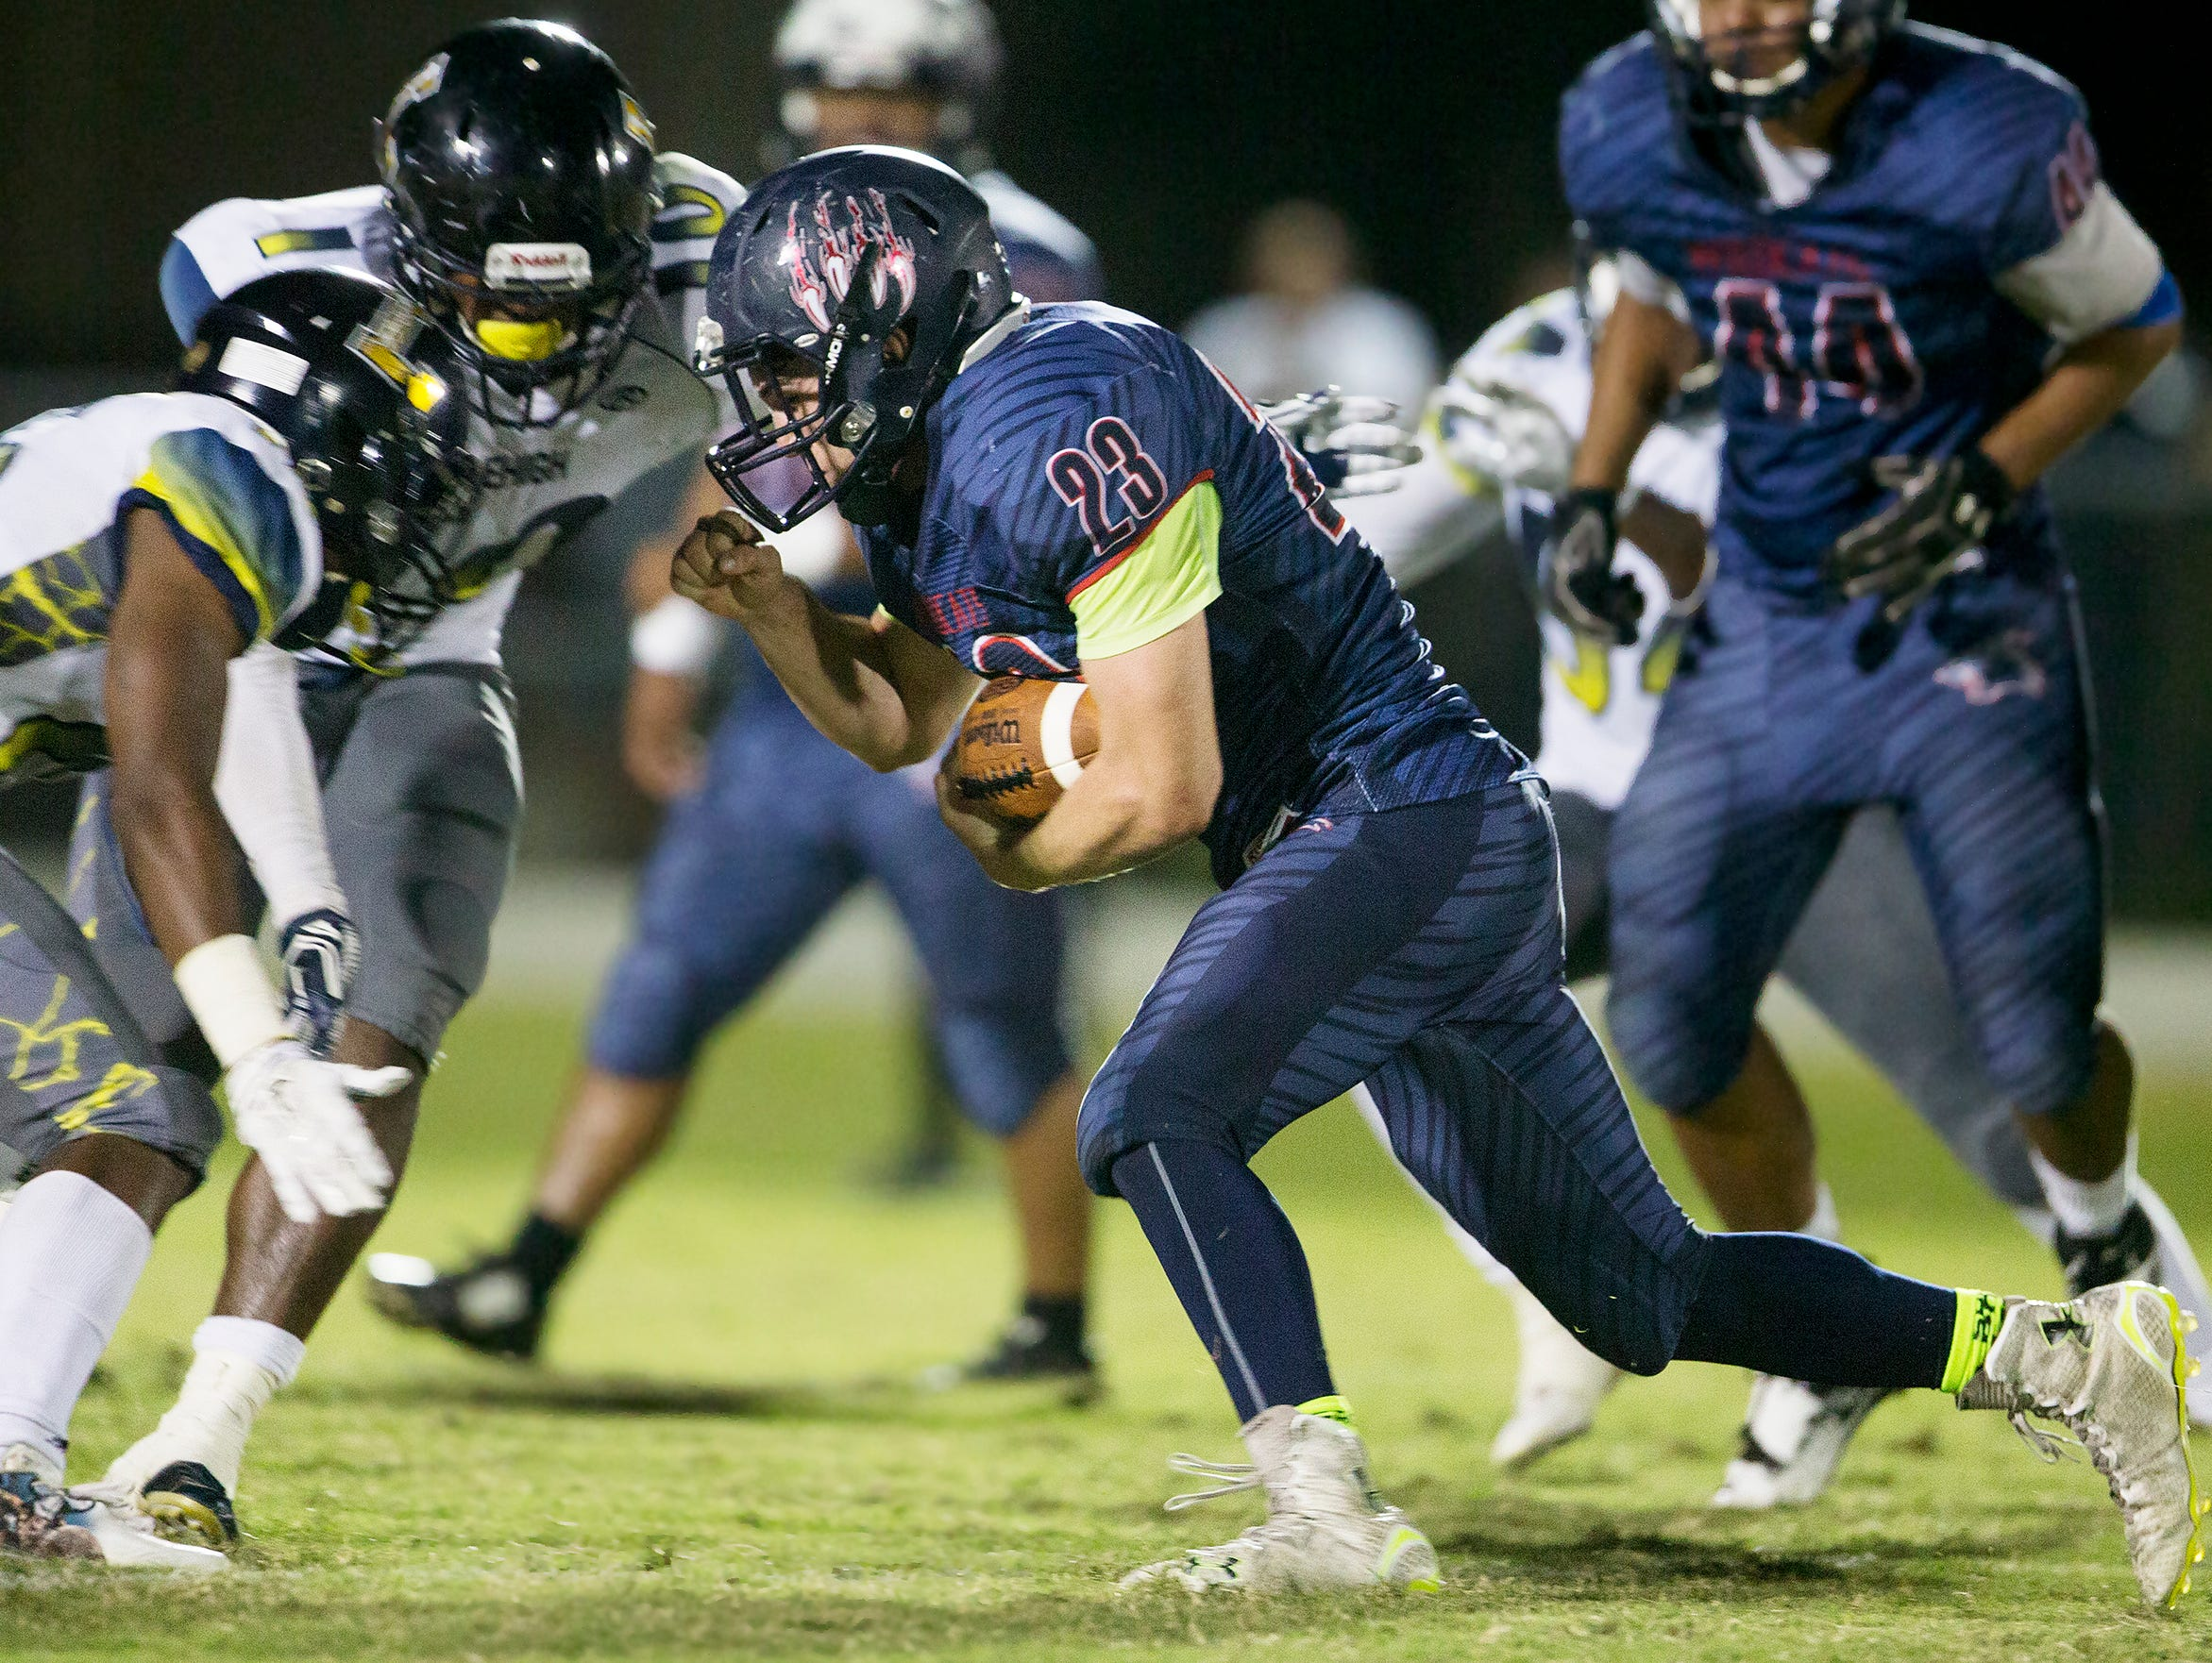 Estero High School's Jonathan Rauss takes on Lehigh defenders during second quarter play on Friday at Estero High School.